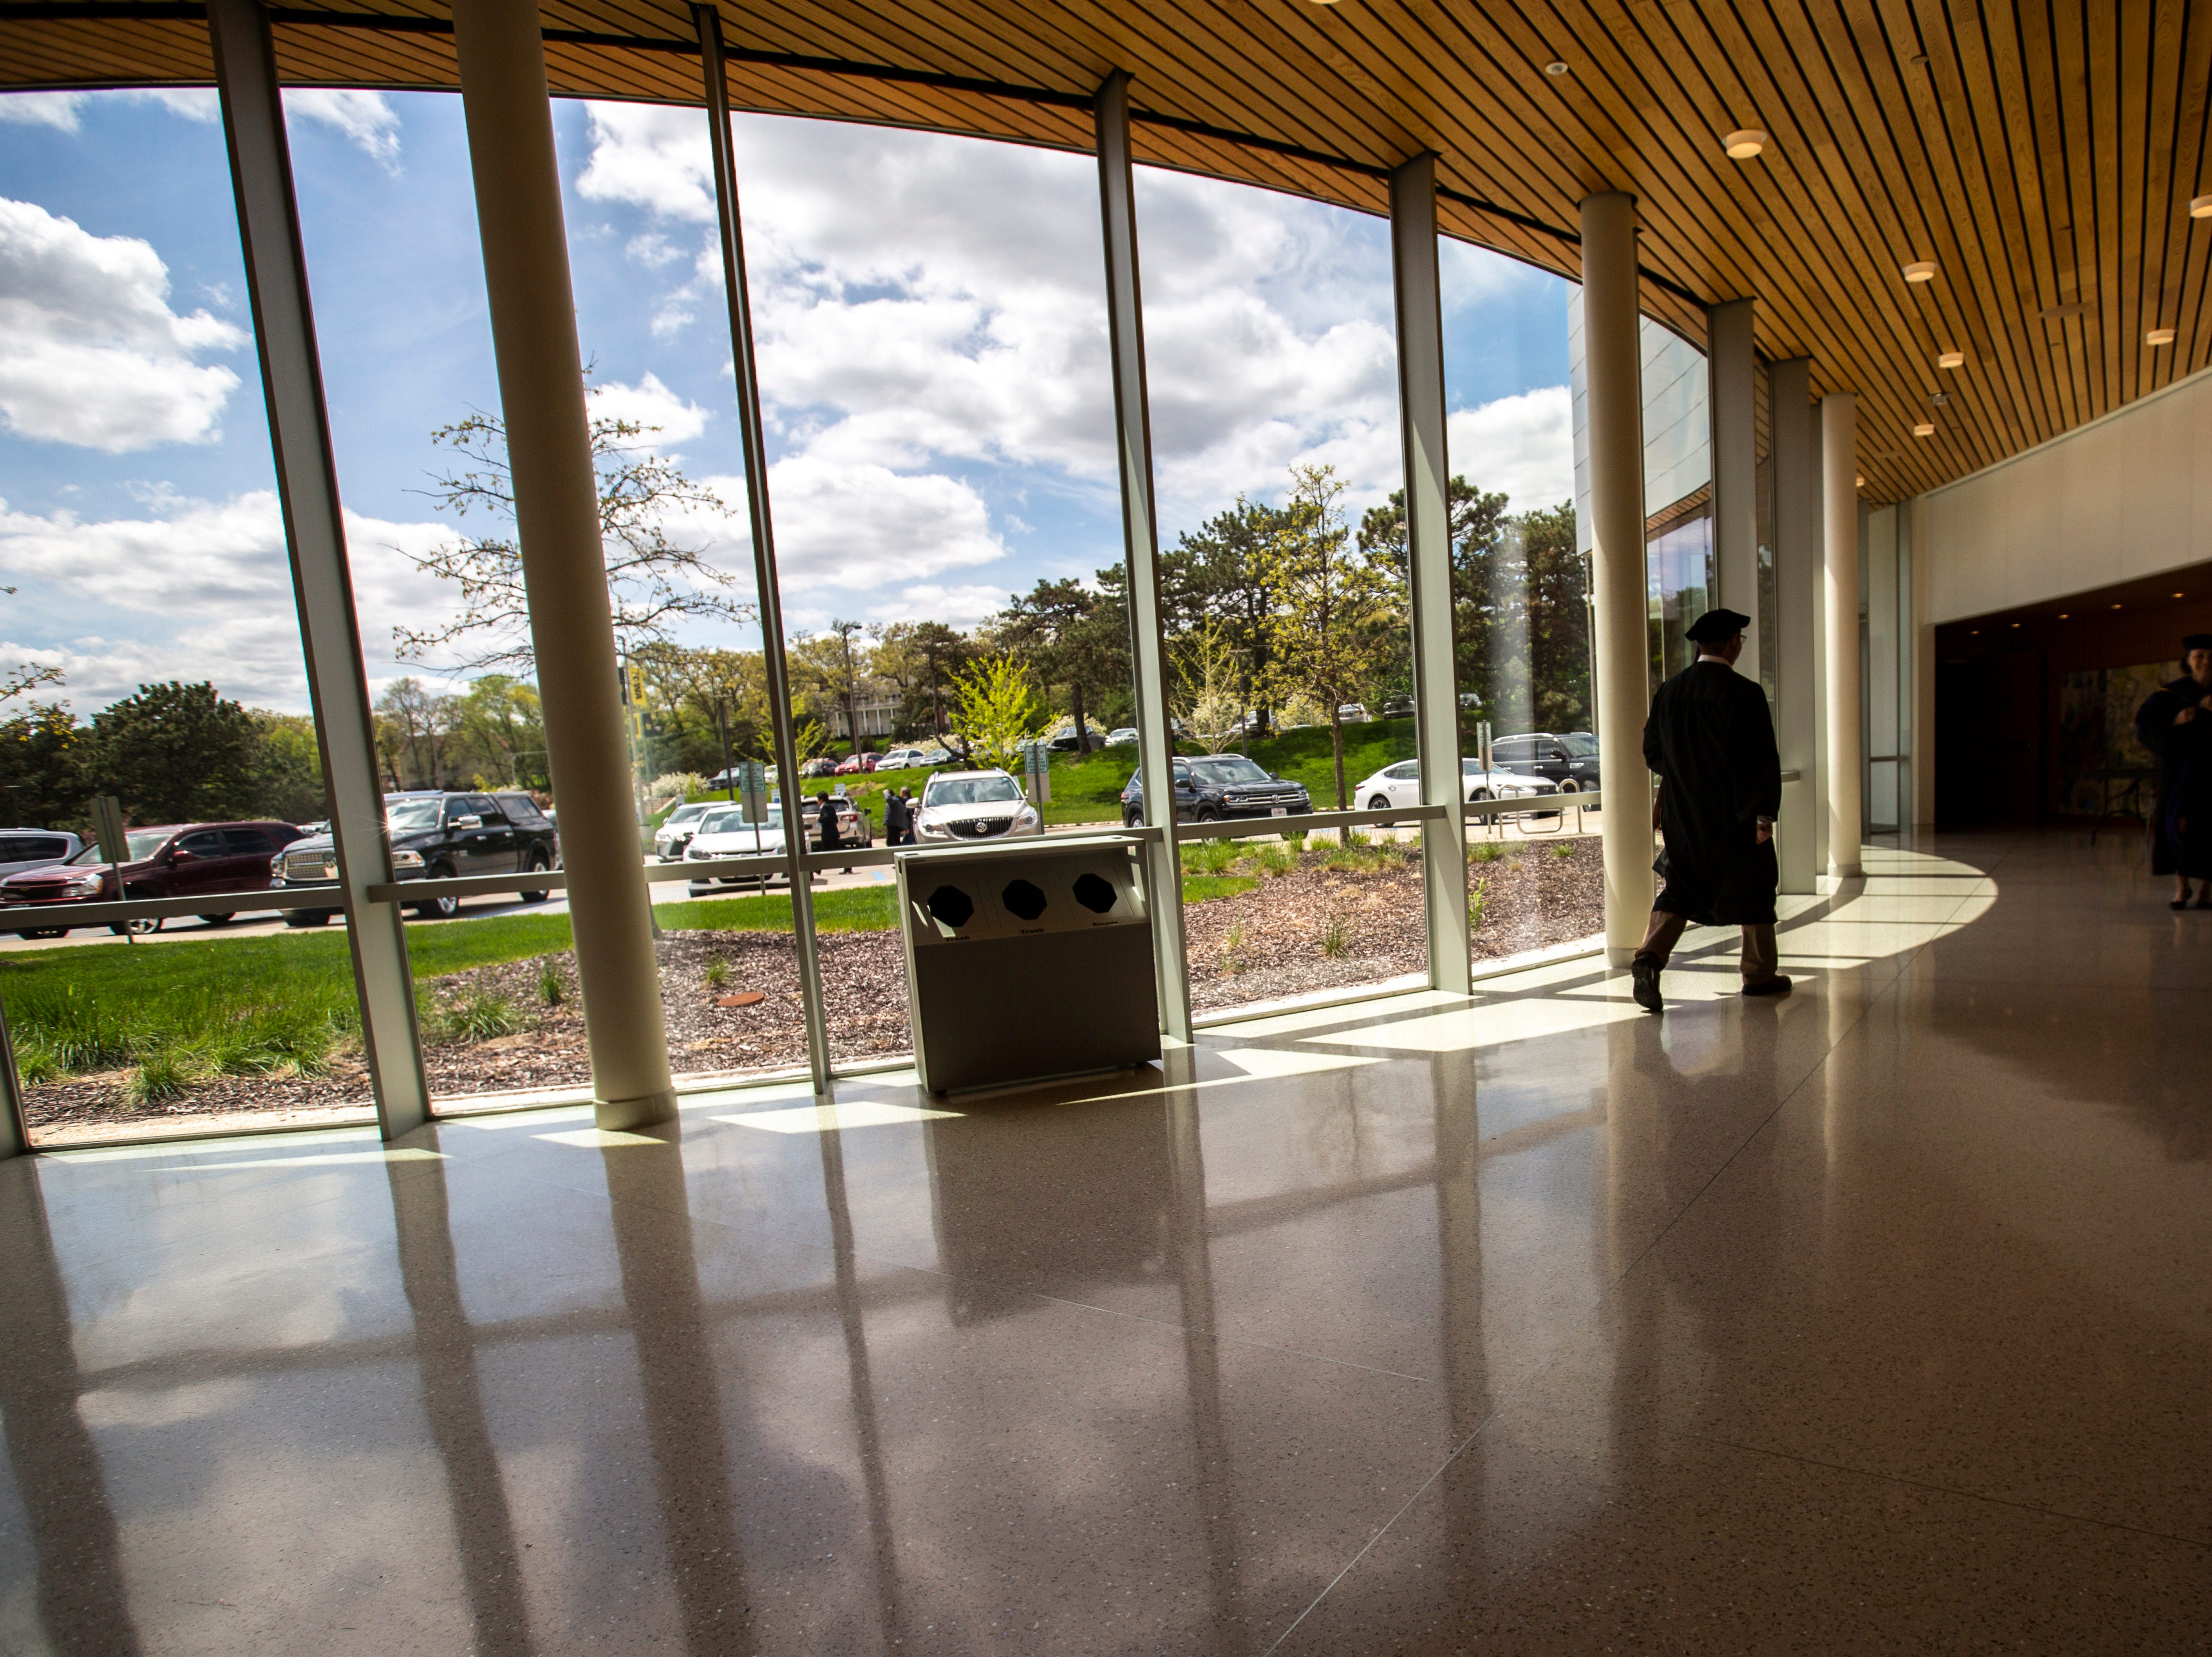 A graduate walks in a hallway past panoramic glass windows during the College of Law commencement ceremony, Friday, May 10, 2019, at Hancher Auditorium on the University of Iowa campus in Iowa City, Iowa.